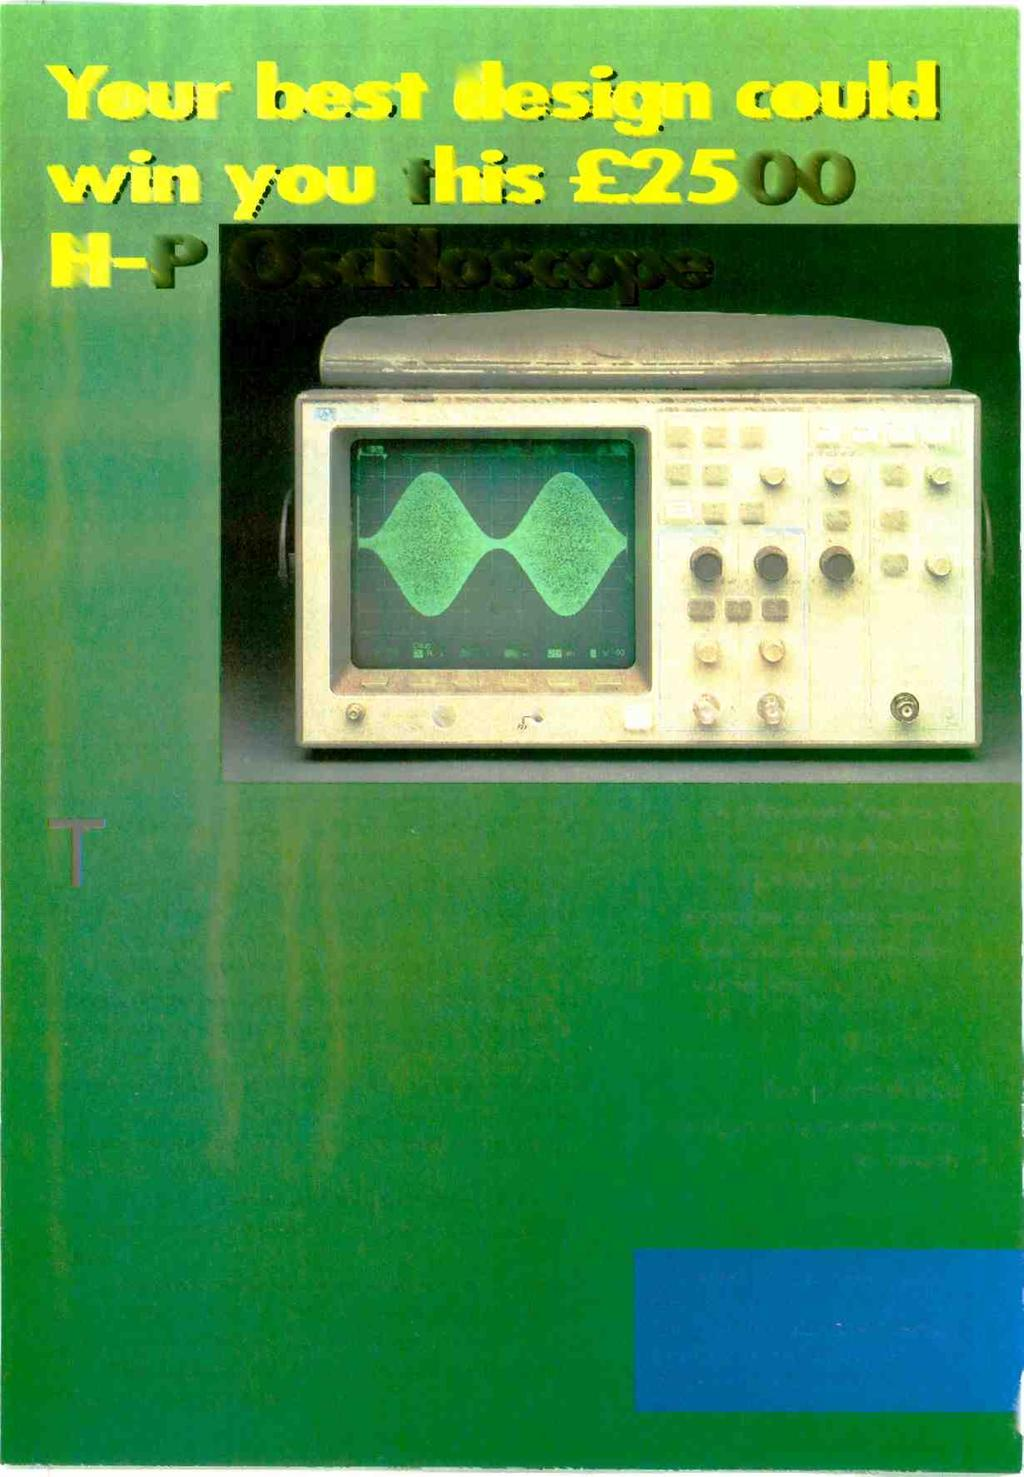 H -P Oscilloscope HAWLETI: 54800A loo VI M& PACKARD OSCILLOSOMI 2 CNANNGL TRIGGER Aul:) Molar VERTICAL Volts/Om Von/DA HIS Hewlett-Packard oscilloscope combines the feel and display of a top line